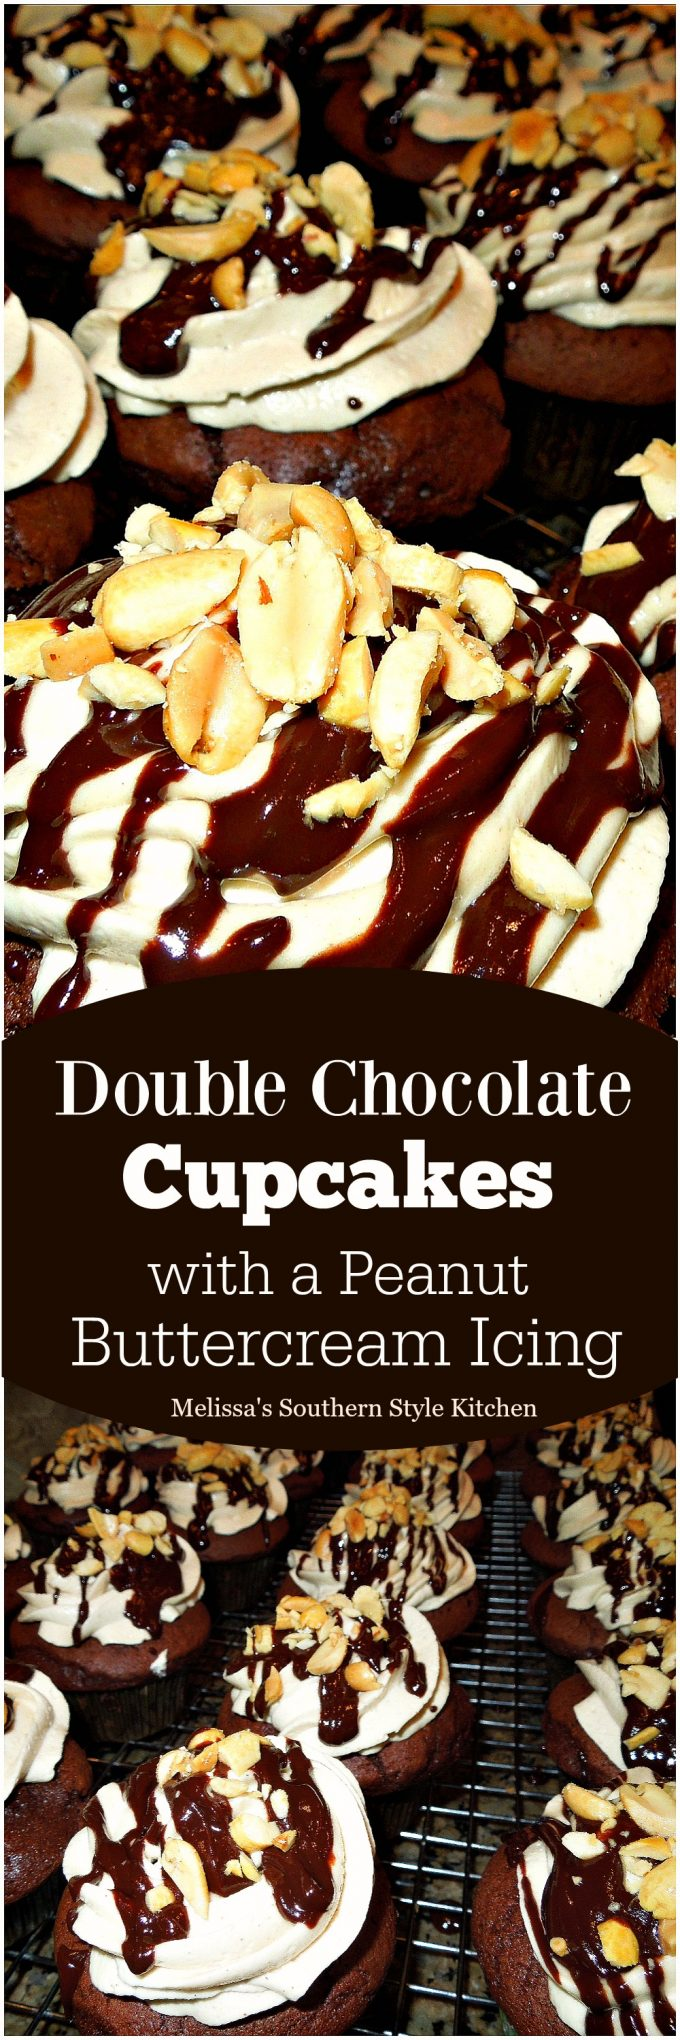 No one will ever know that these Double Chocolate Cupcakes frosted with a dreamy peanut buttercream icing are a cake mix hack #doublechocolatecupcakes #cupcakerecipe #peanutbuttercream #peanutbutterfrosting #peanutbutter #chocolatecake #cakemixhack